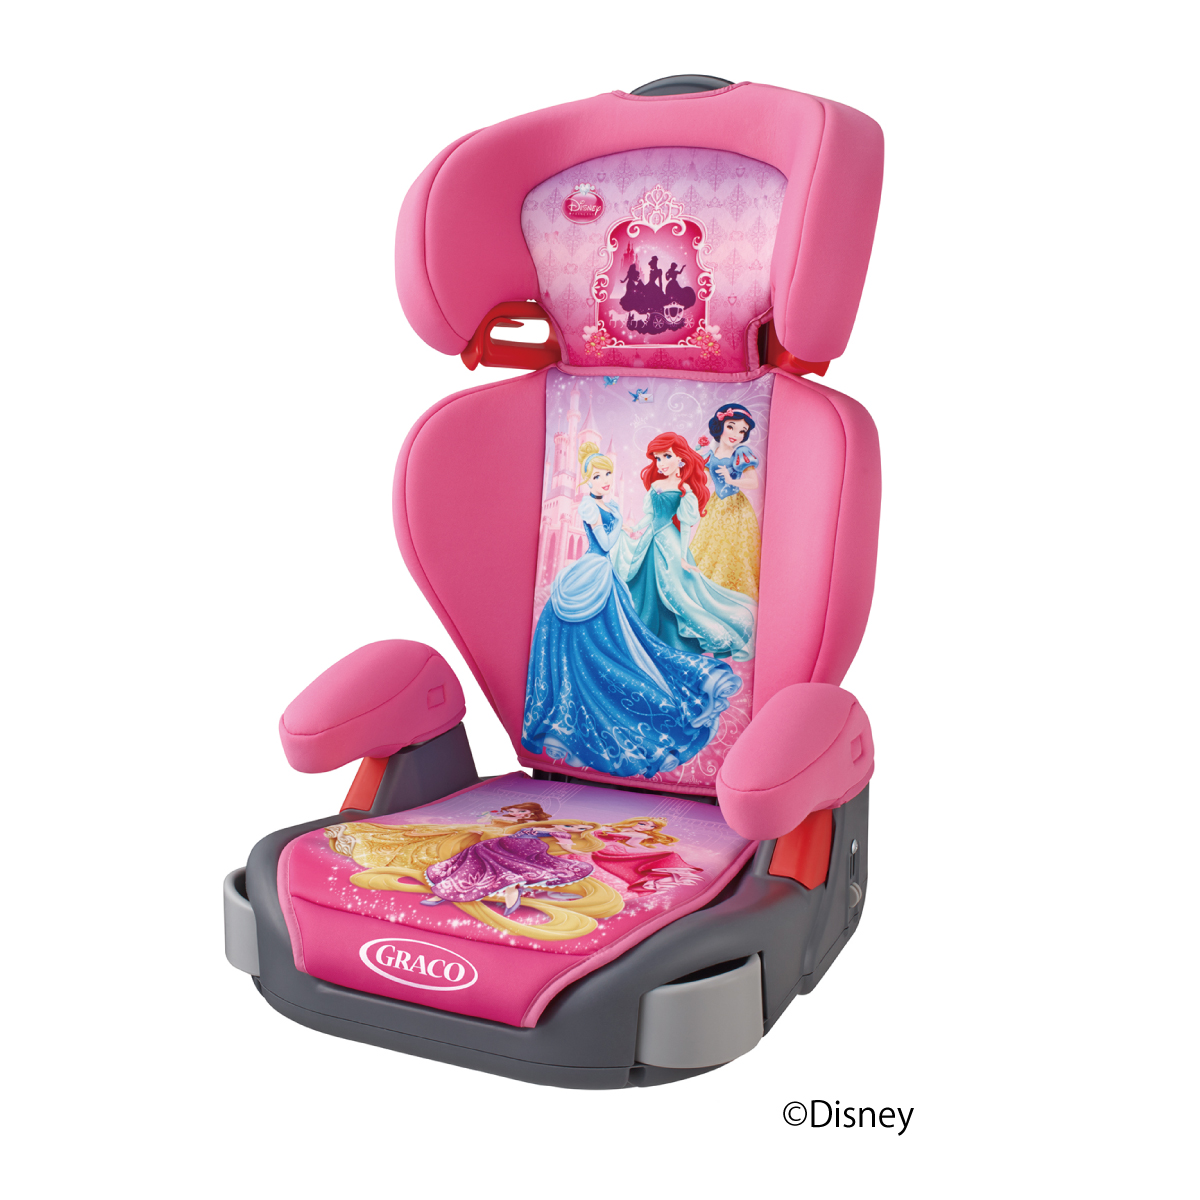 Junior_Maxi_Plus_Disney_67407_01